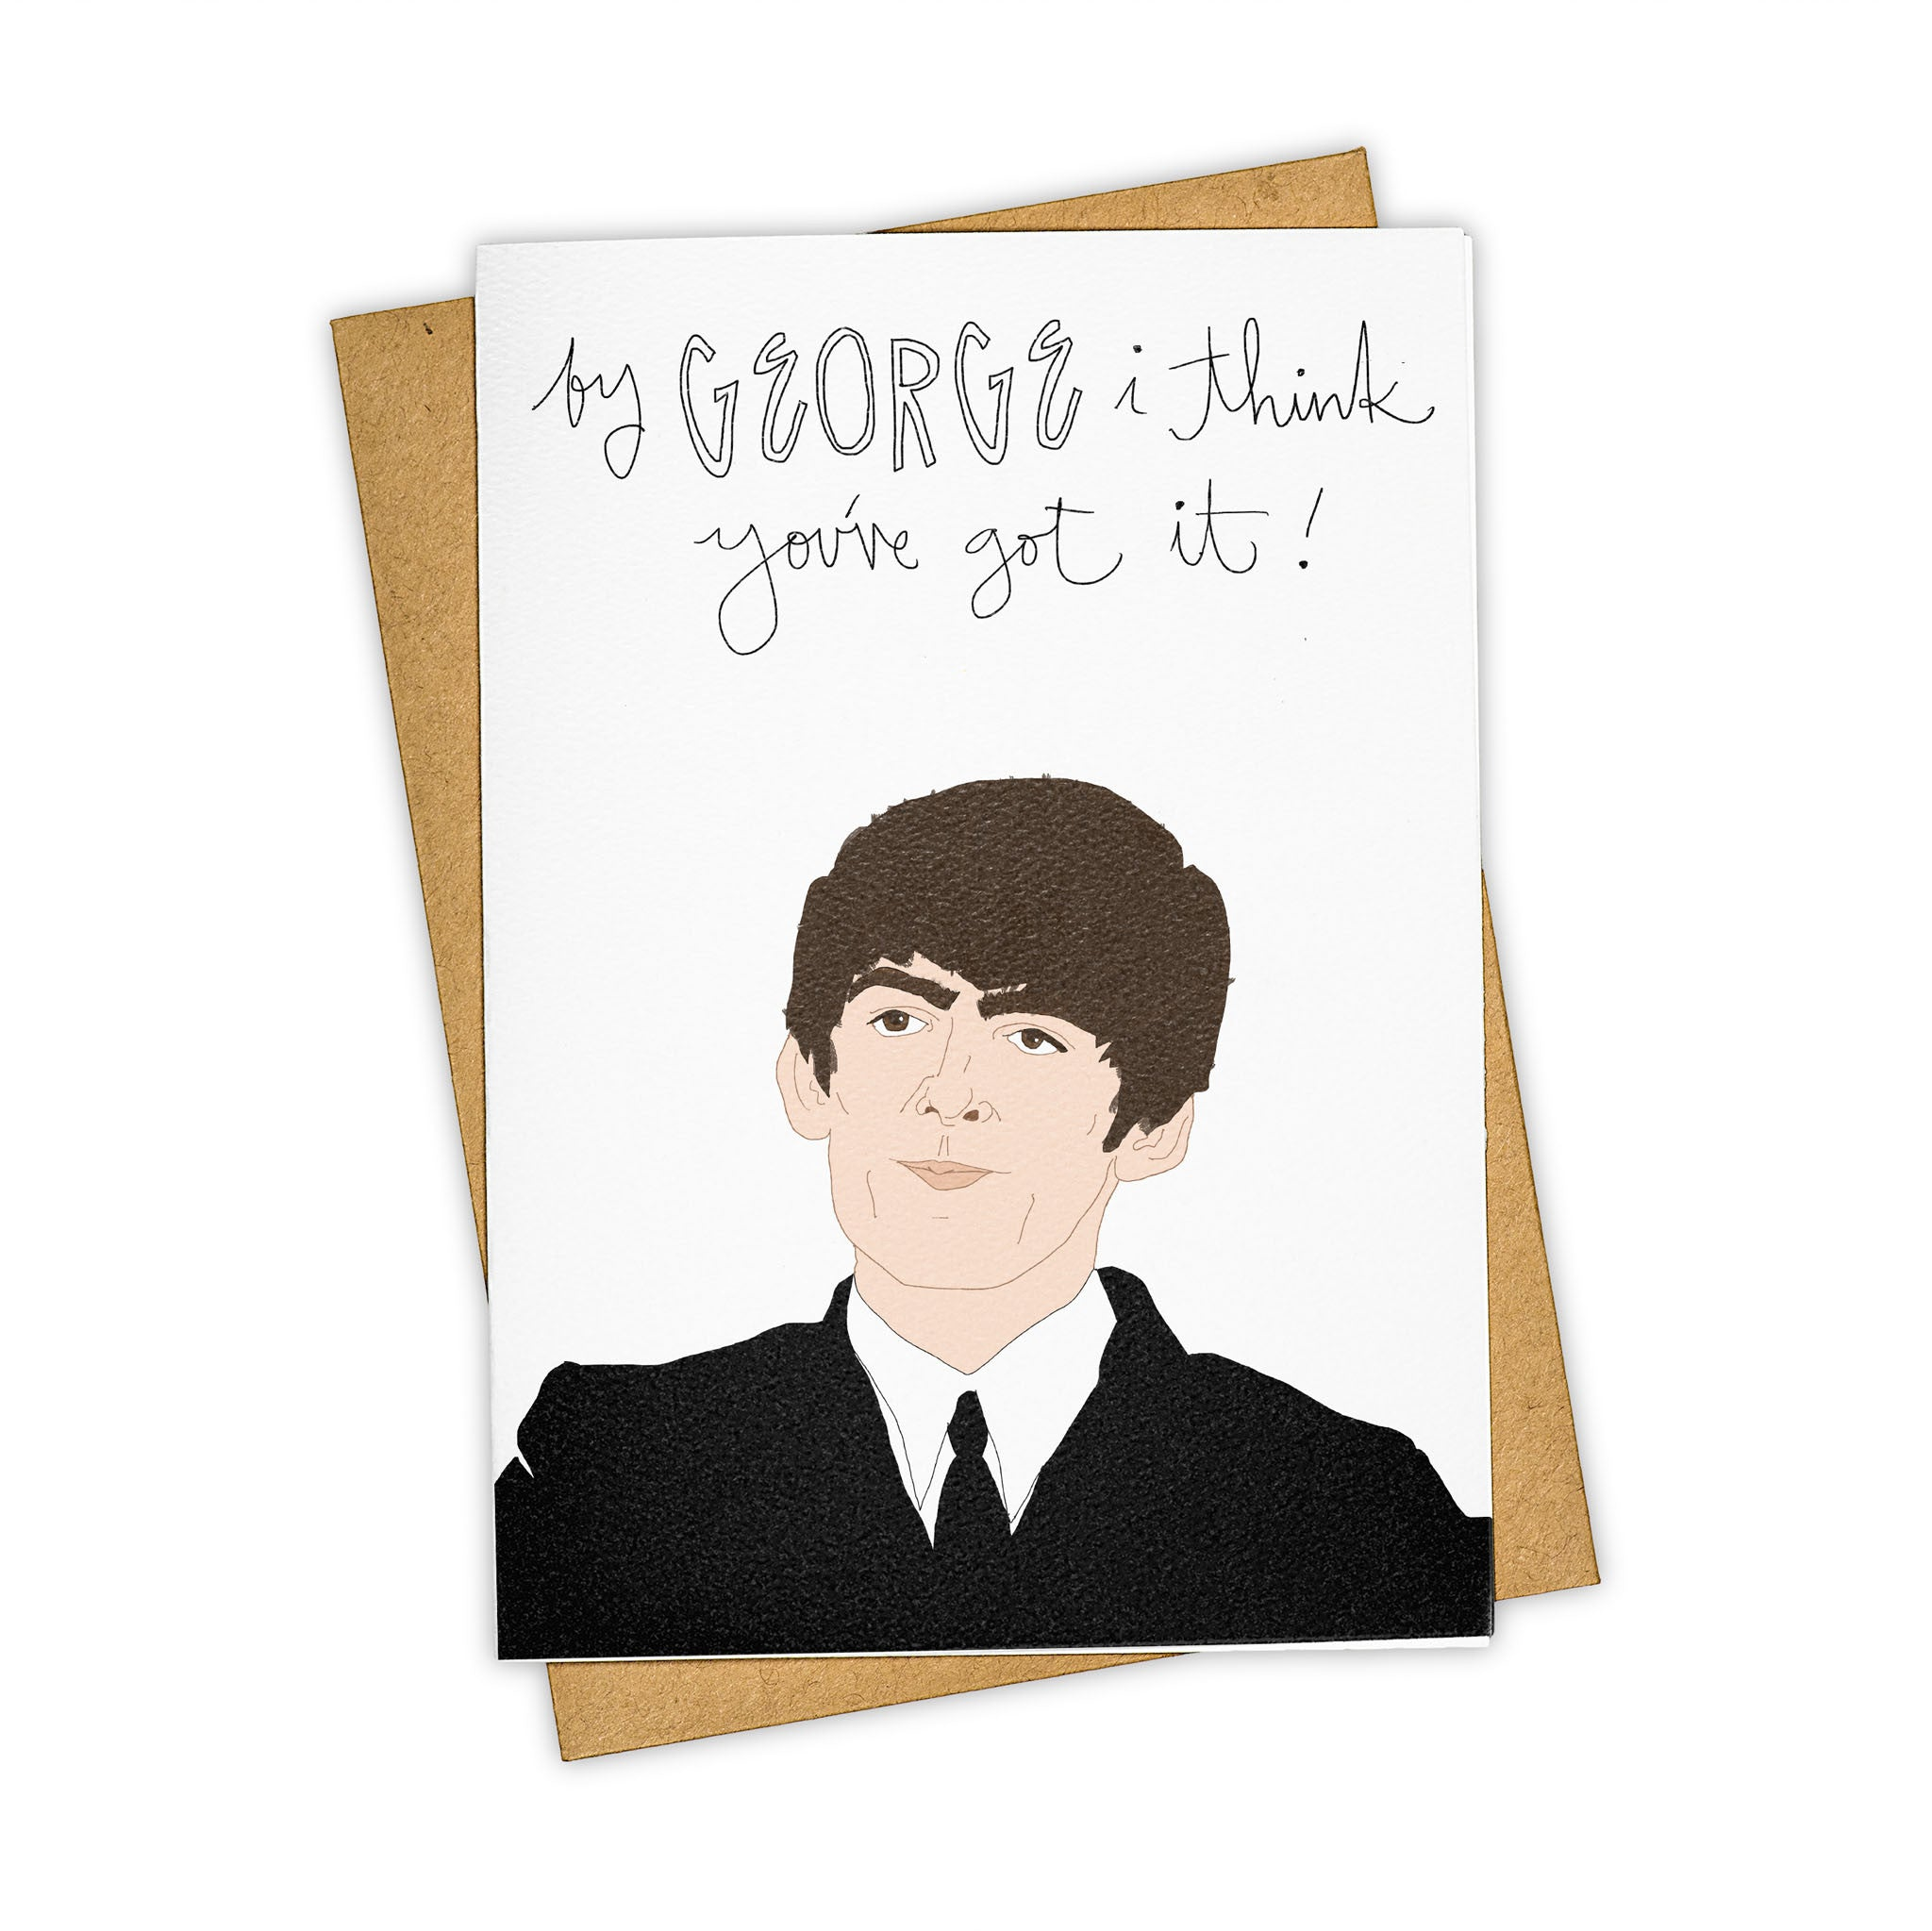 TAY HAM The Beatles George Harrison Birthday Card